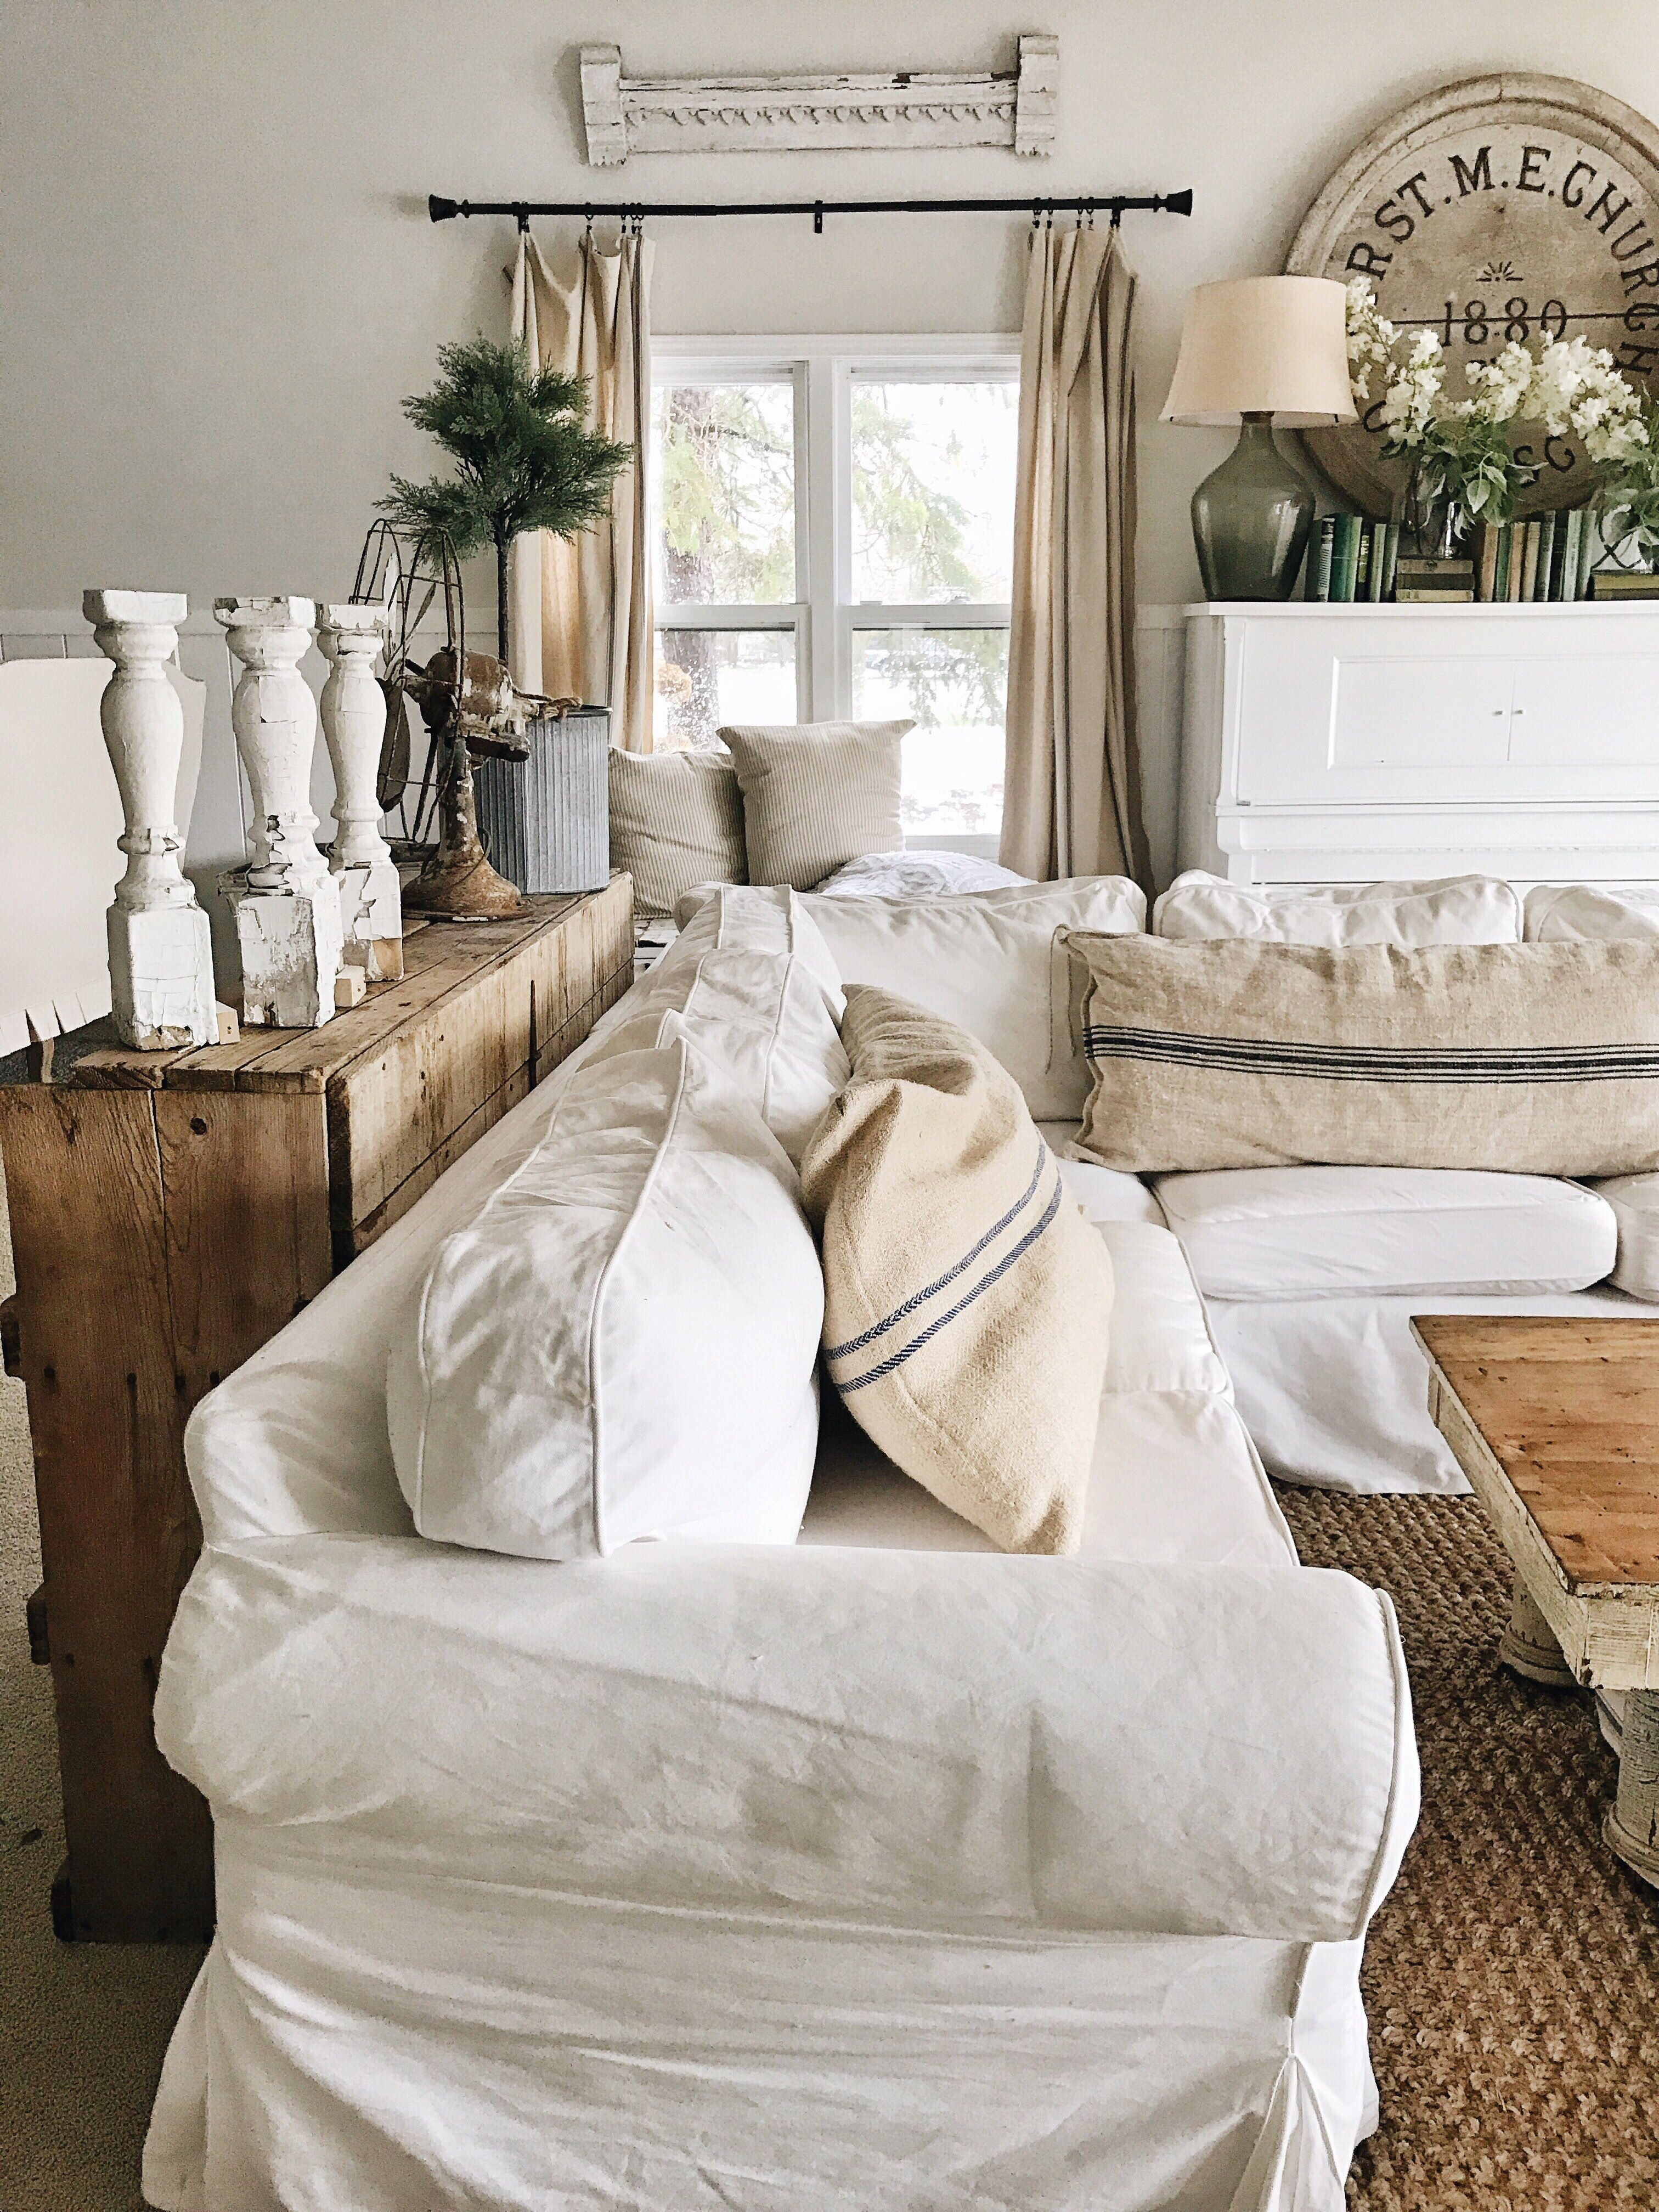 Farmhouse Decor From Ikea Blogger Home Projects We Love